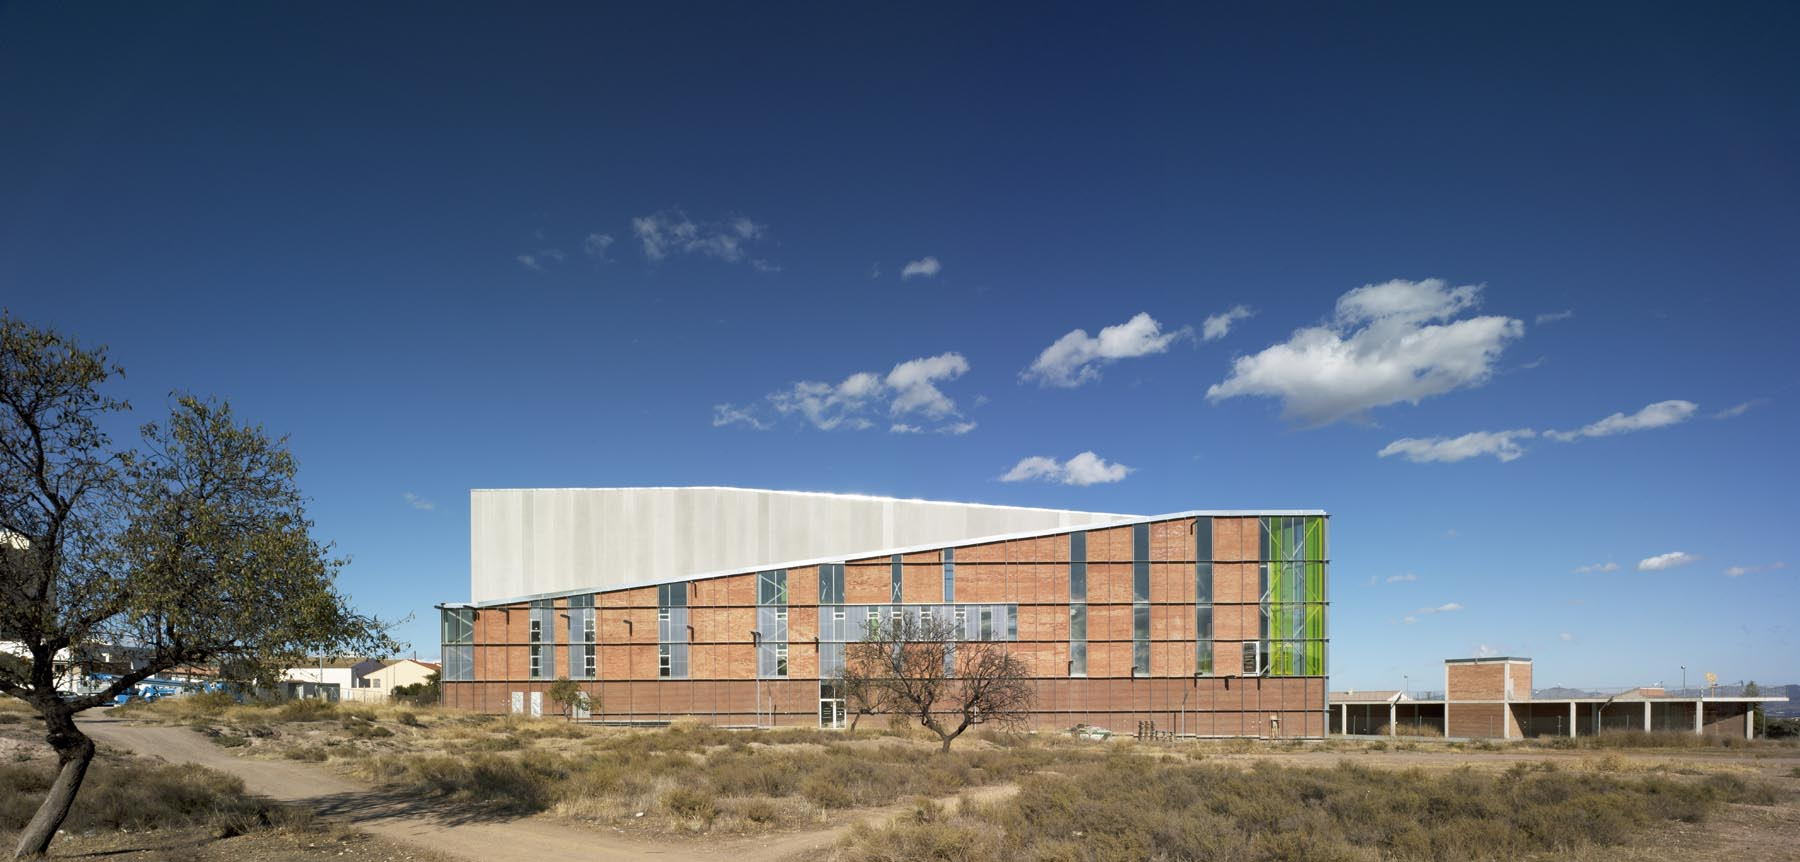 Theatre, Auditorium and Multipurpose Buildings. Murcia